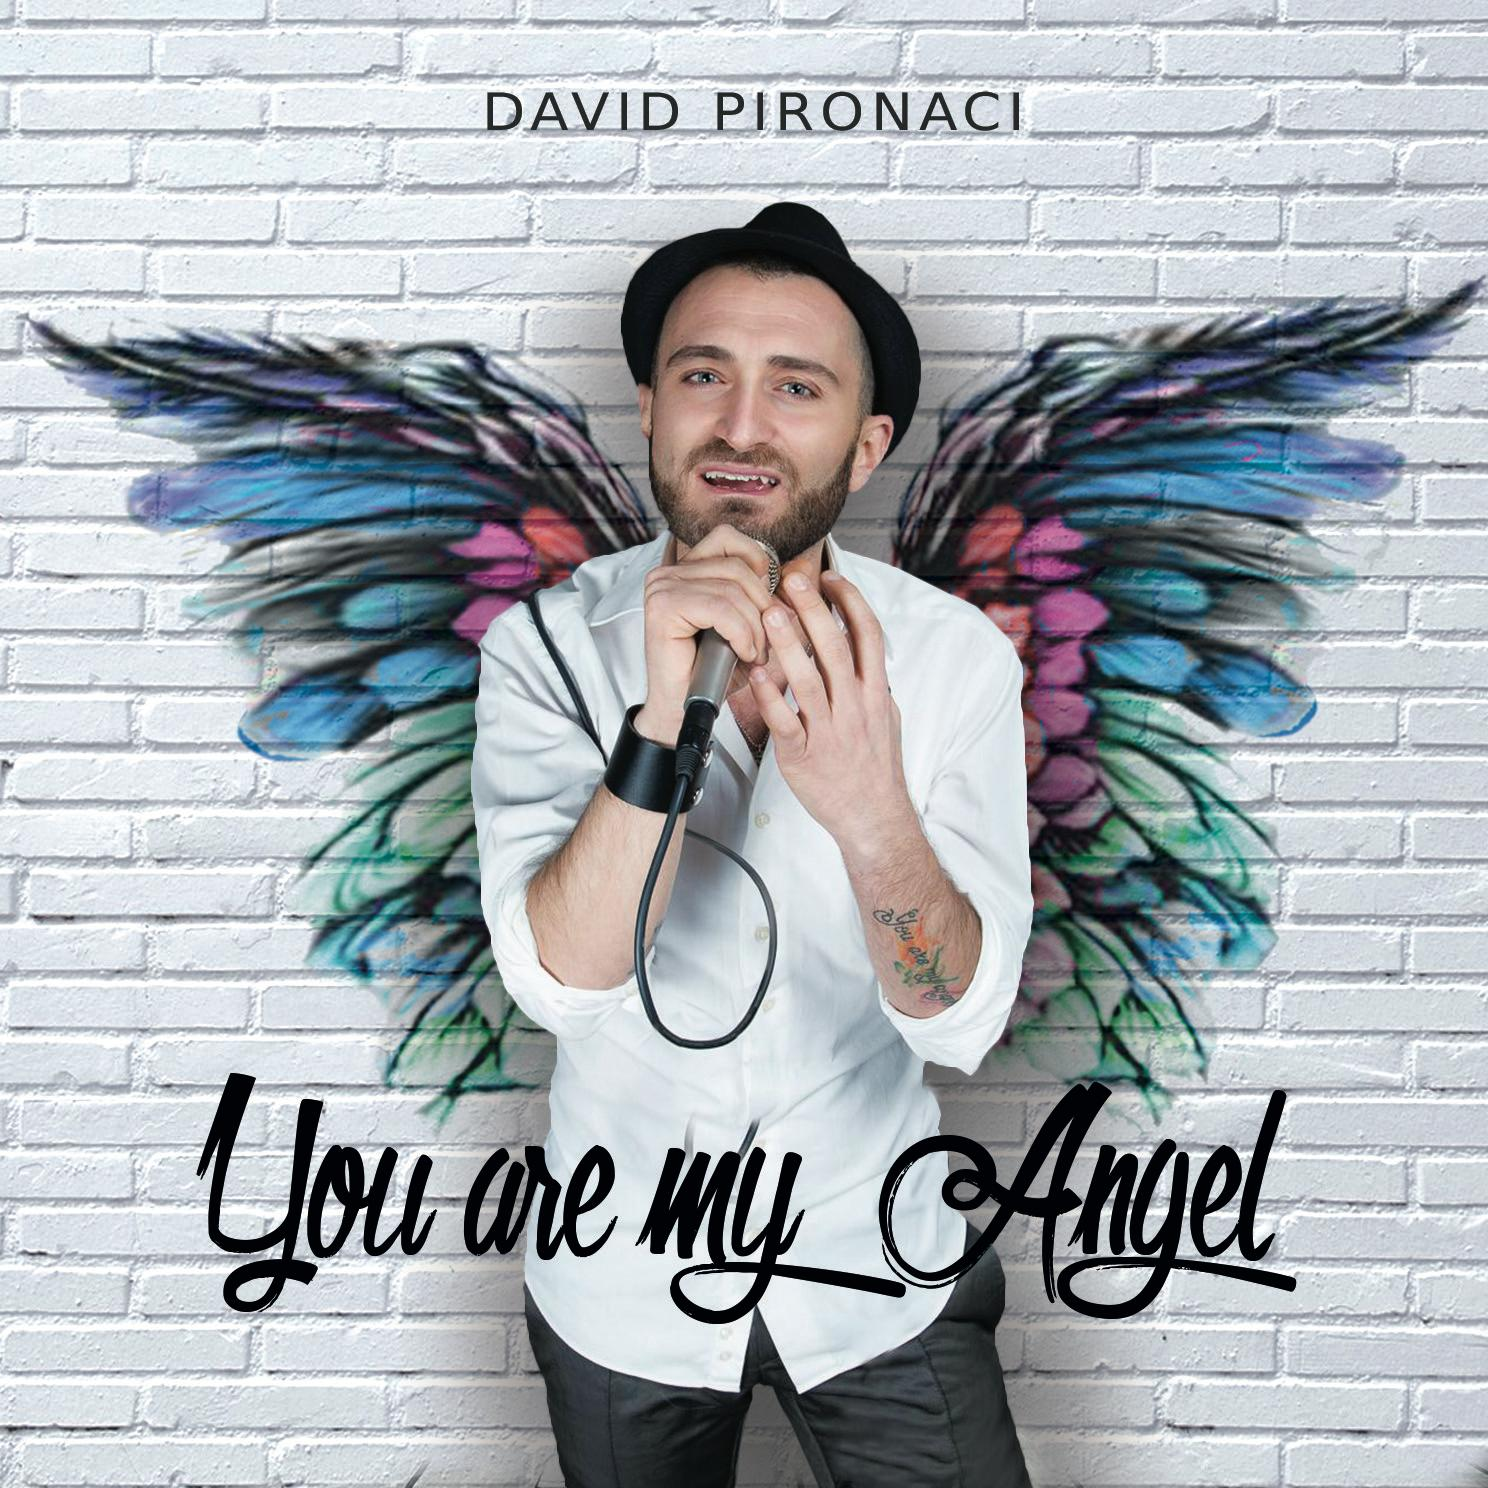 David Pironaci, giudice di All Together Now, esce con il suo nuovo singolo